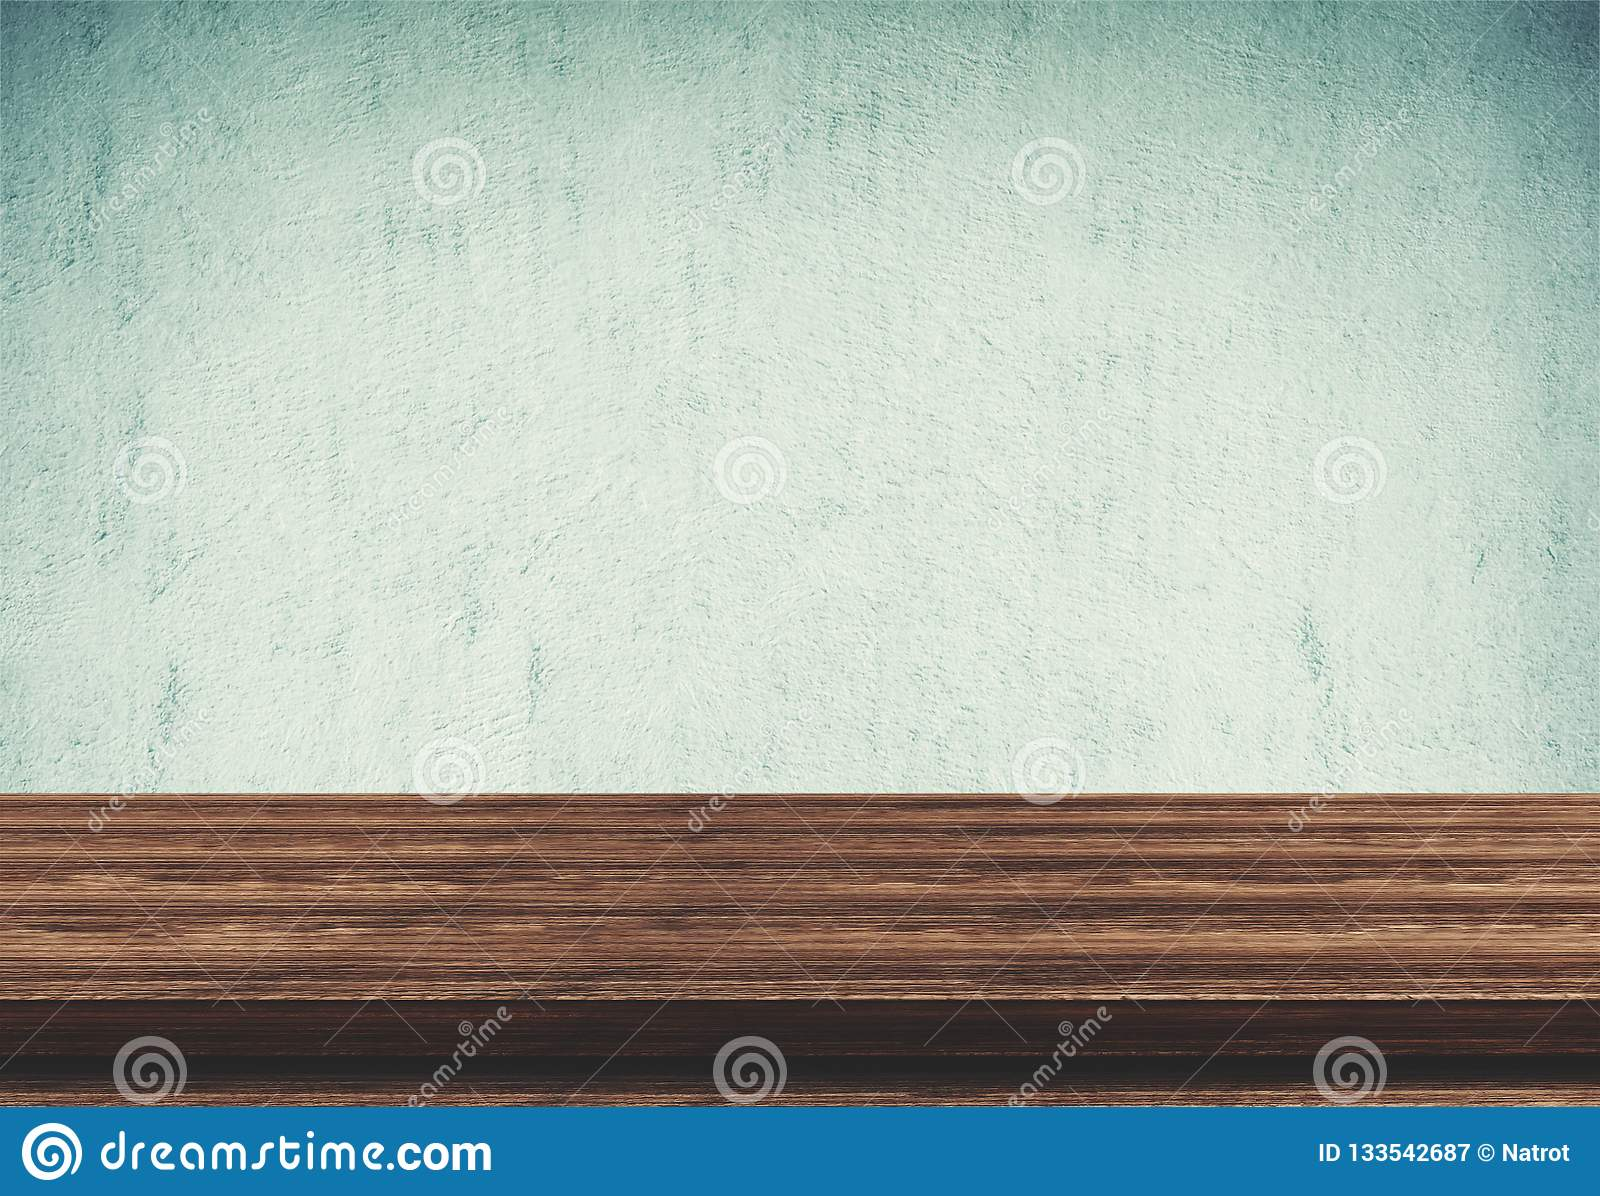 Empty wood table top on blue concrete background